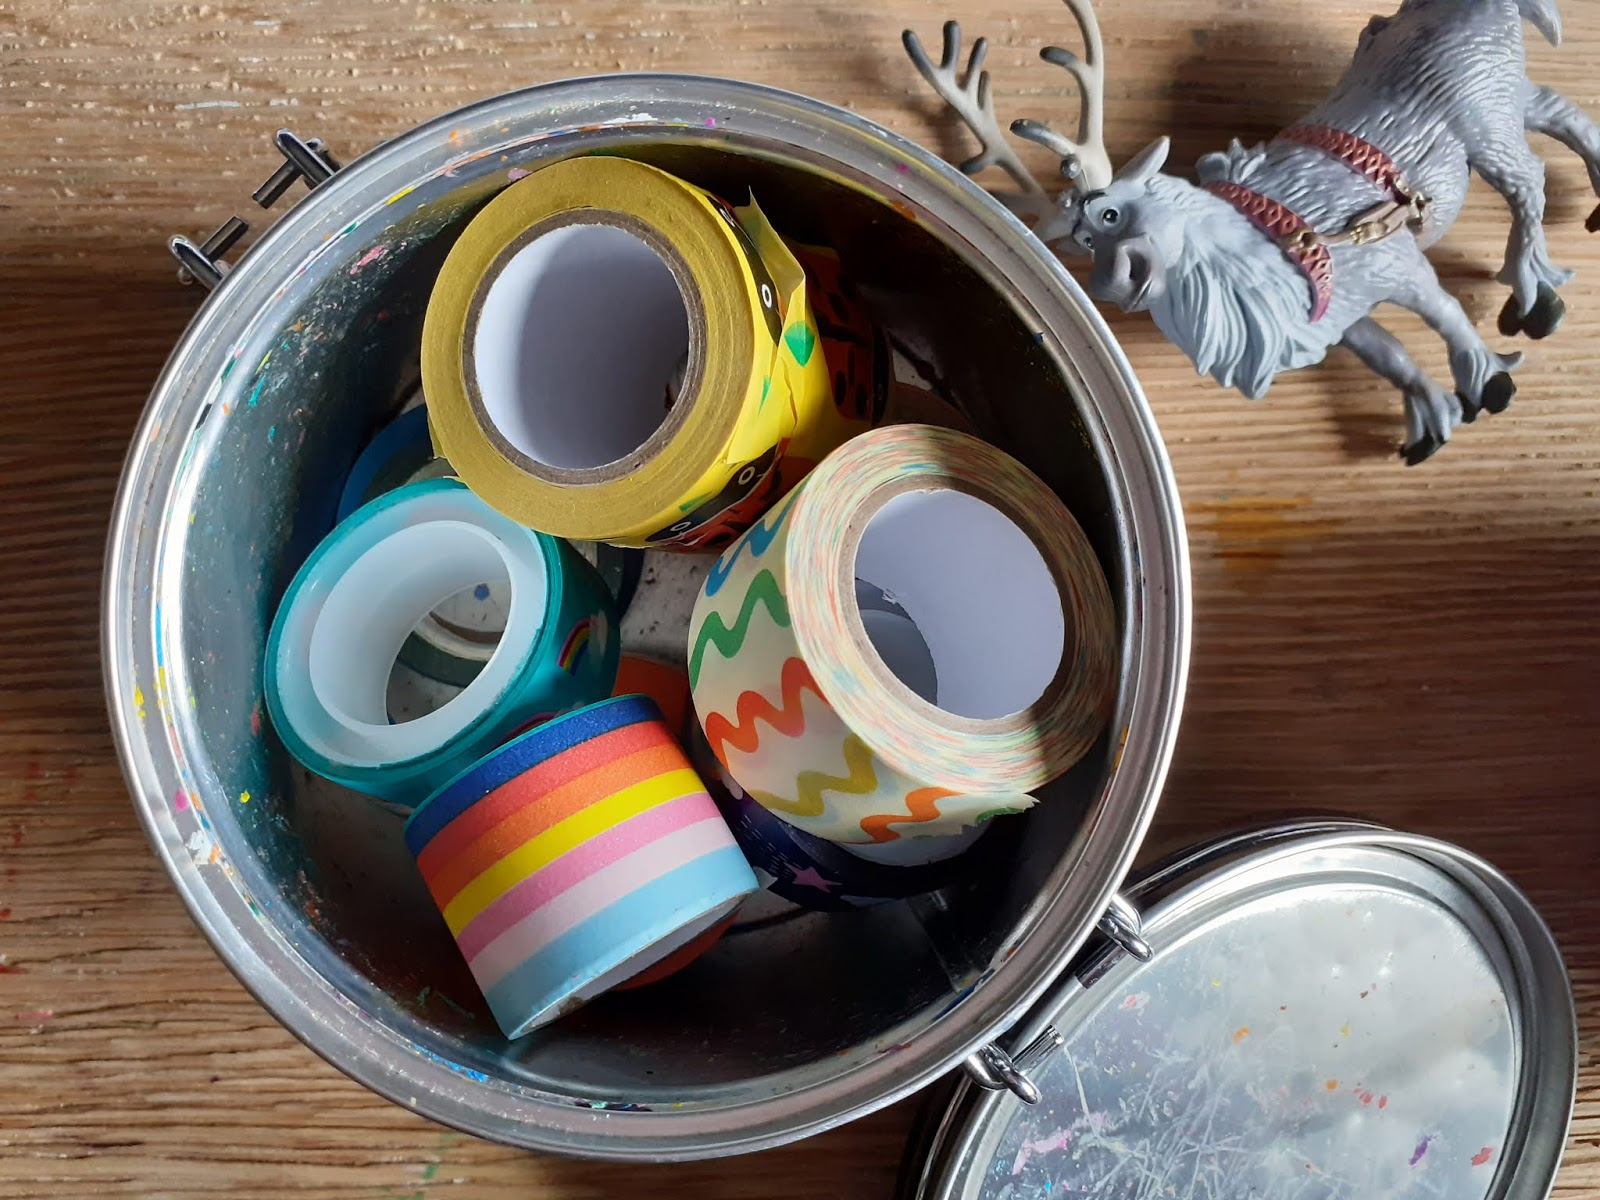 Rolls of washi tape in a tin